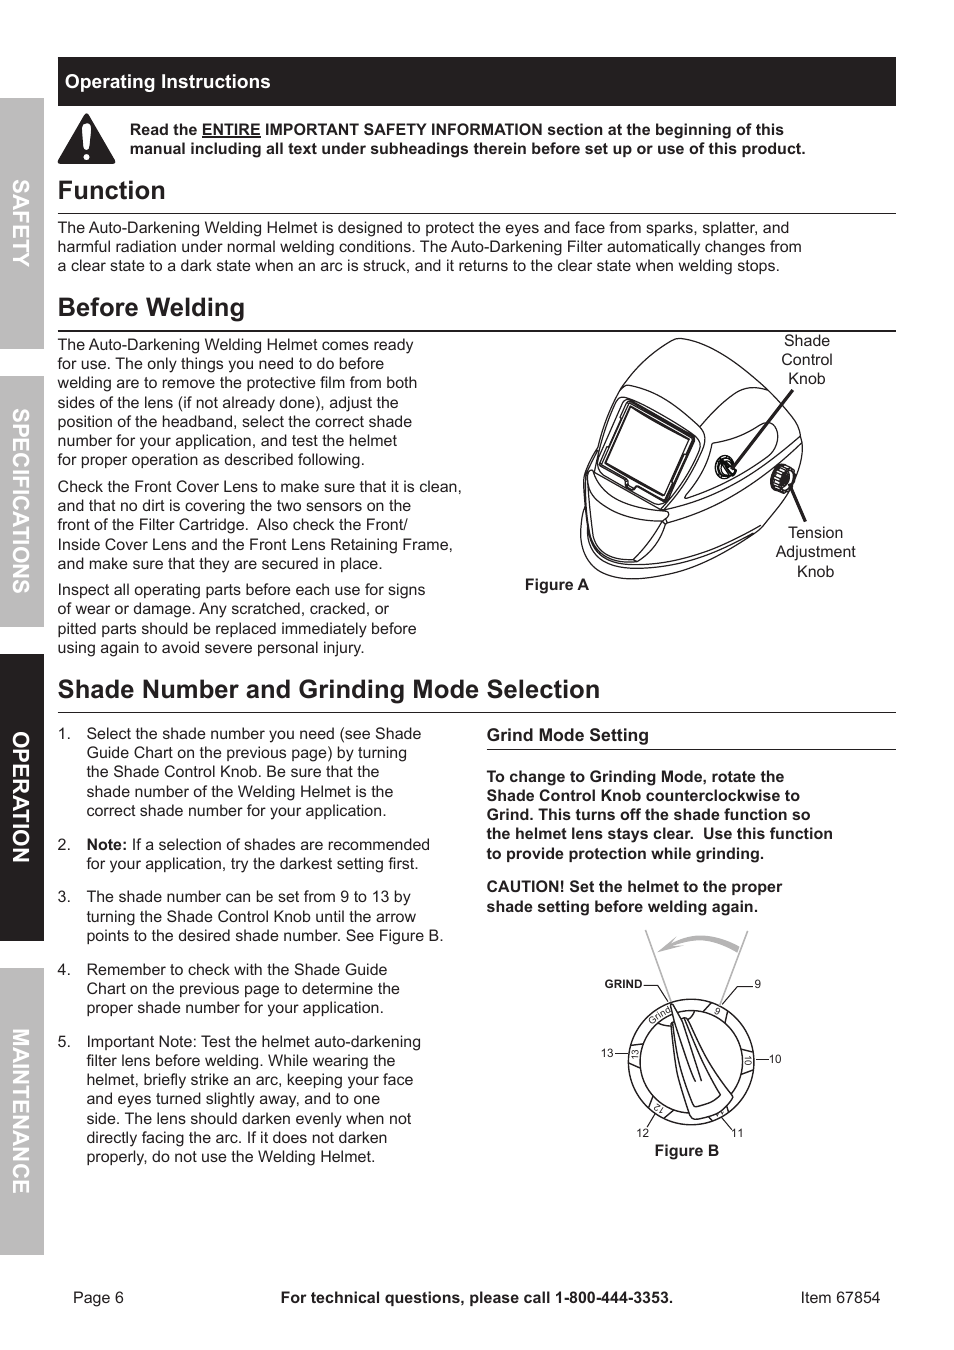 Function Before Welding Shade Number And Grinding Mode Selection Chicago Electric Auto Darkening Helmet 67854 User Manual Page 6 12